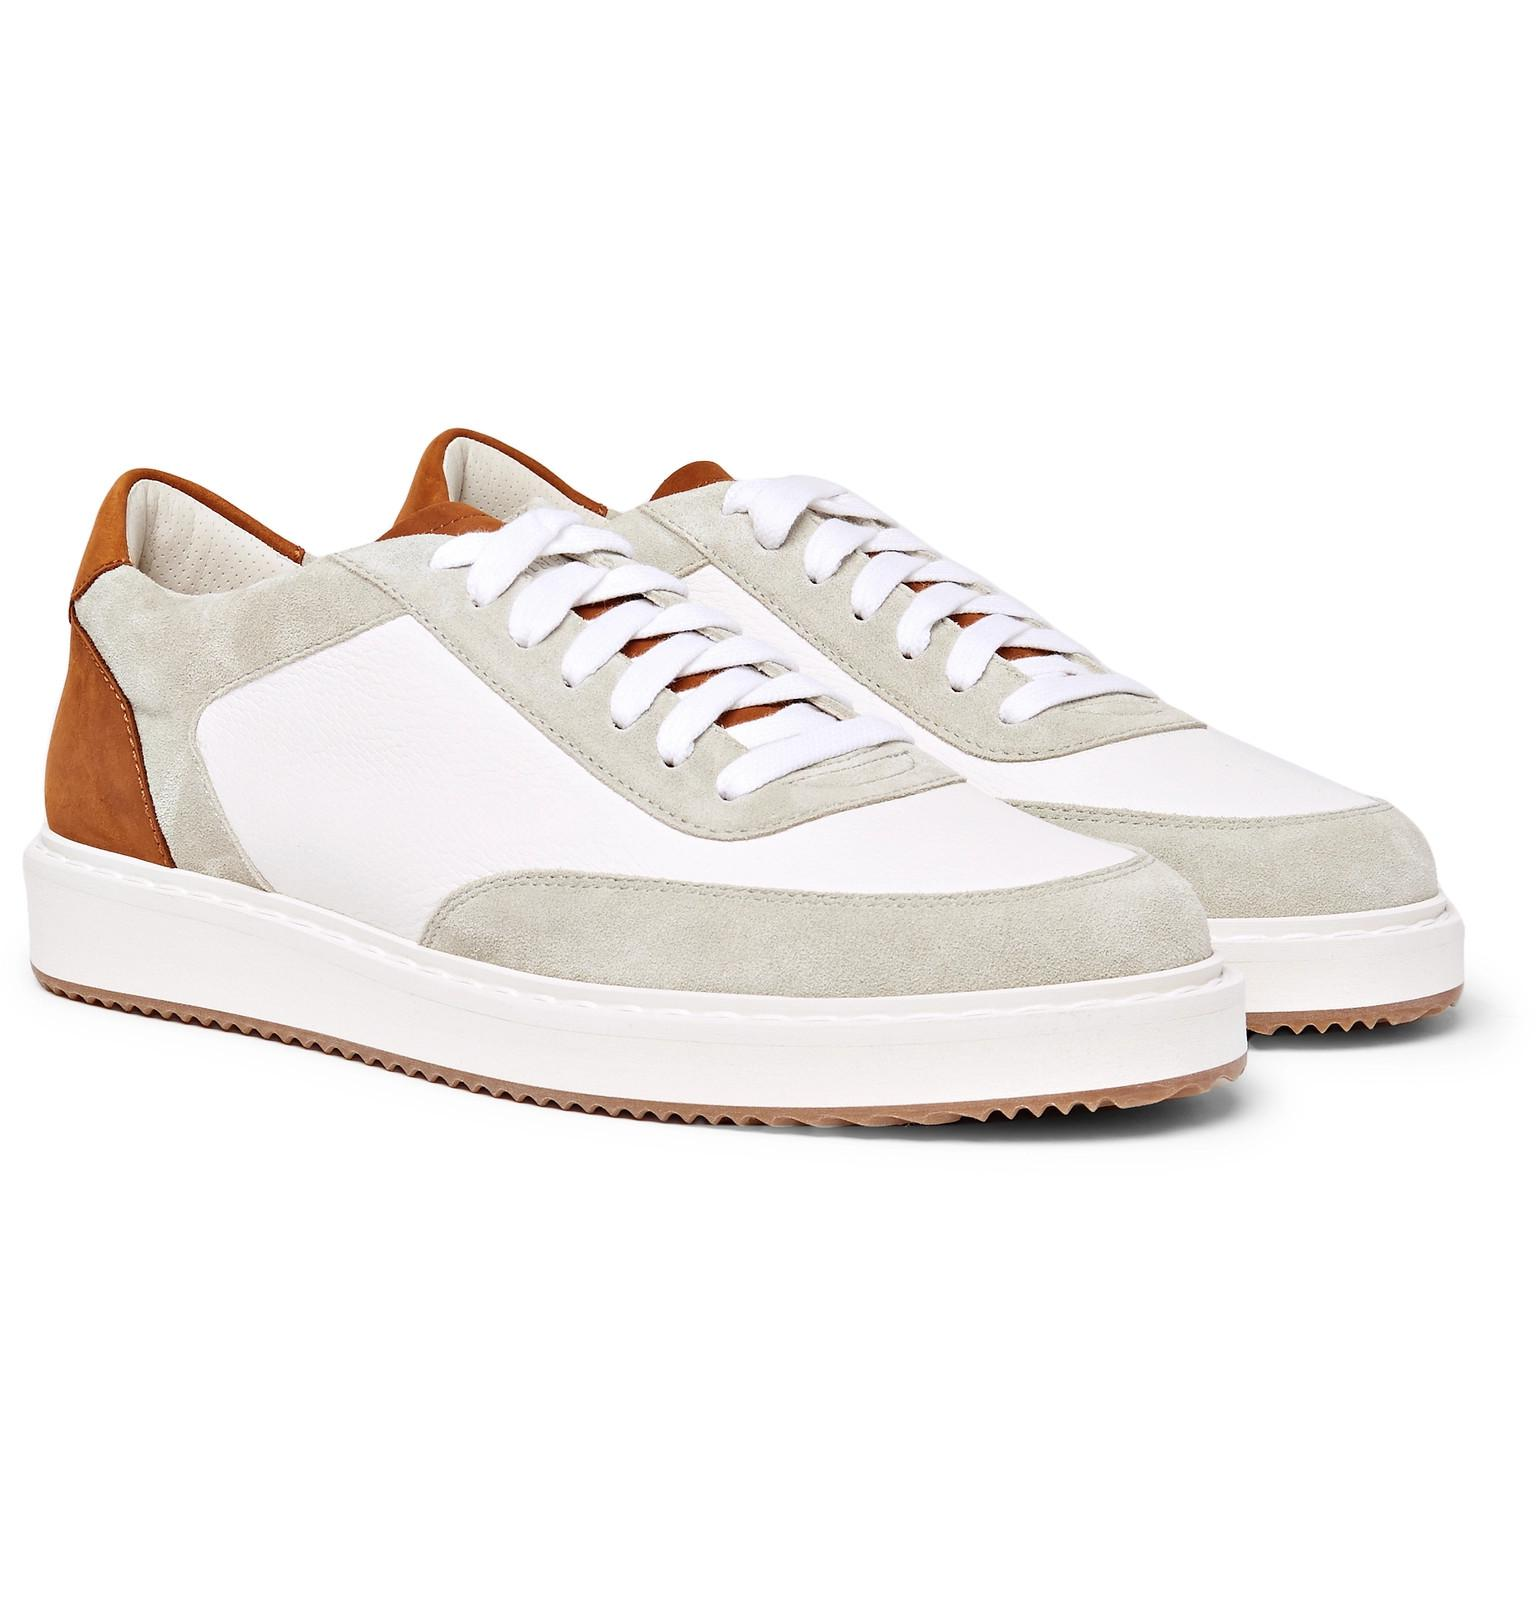 Crono Suede And Full-grain Leather Sneakers Brunello Cucinelli NYKY16Zlf9